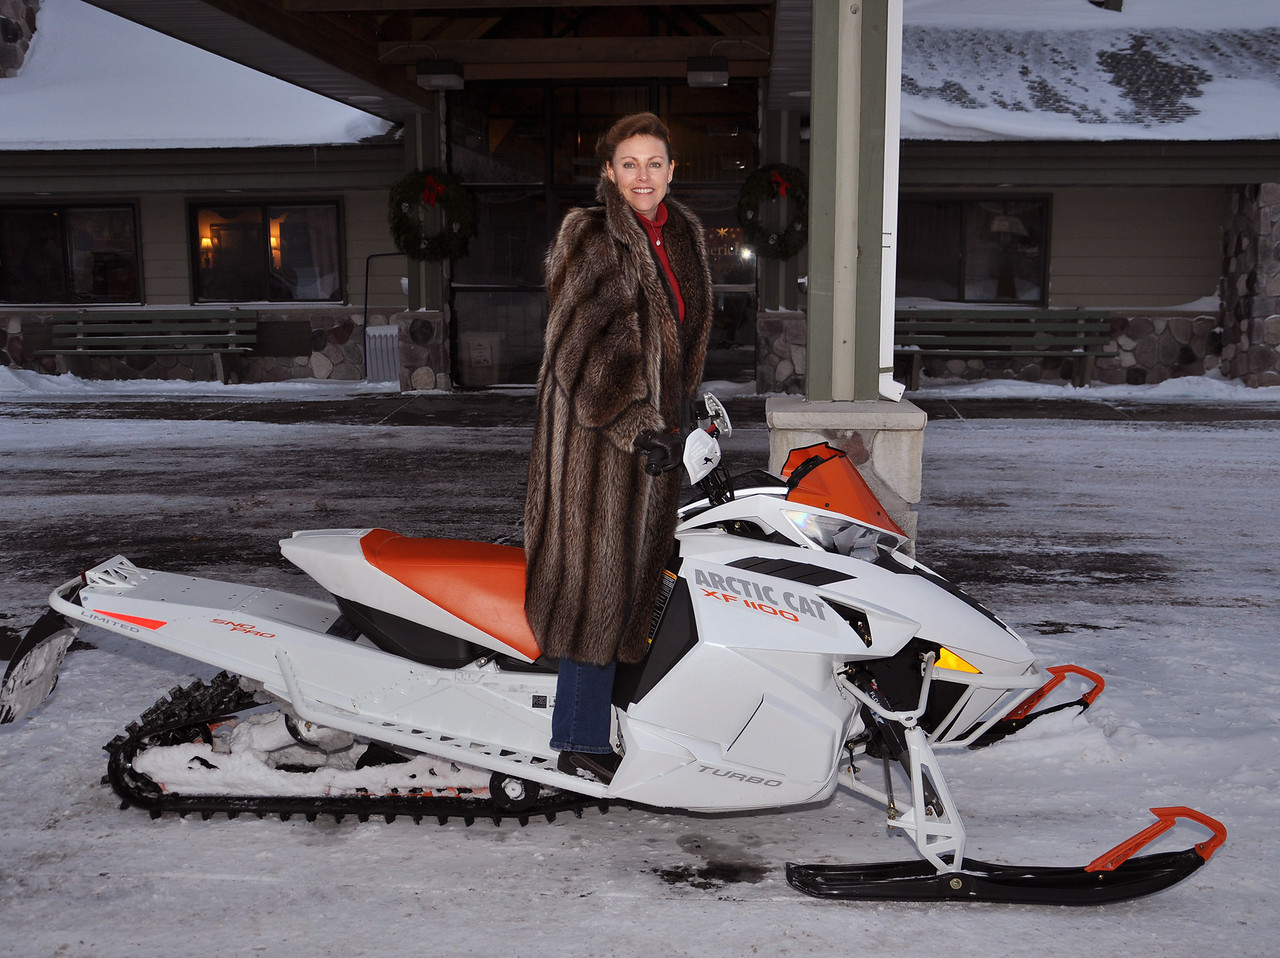 Lorraine DeMarois and the Arctic Cat Snowmobile!